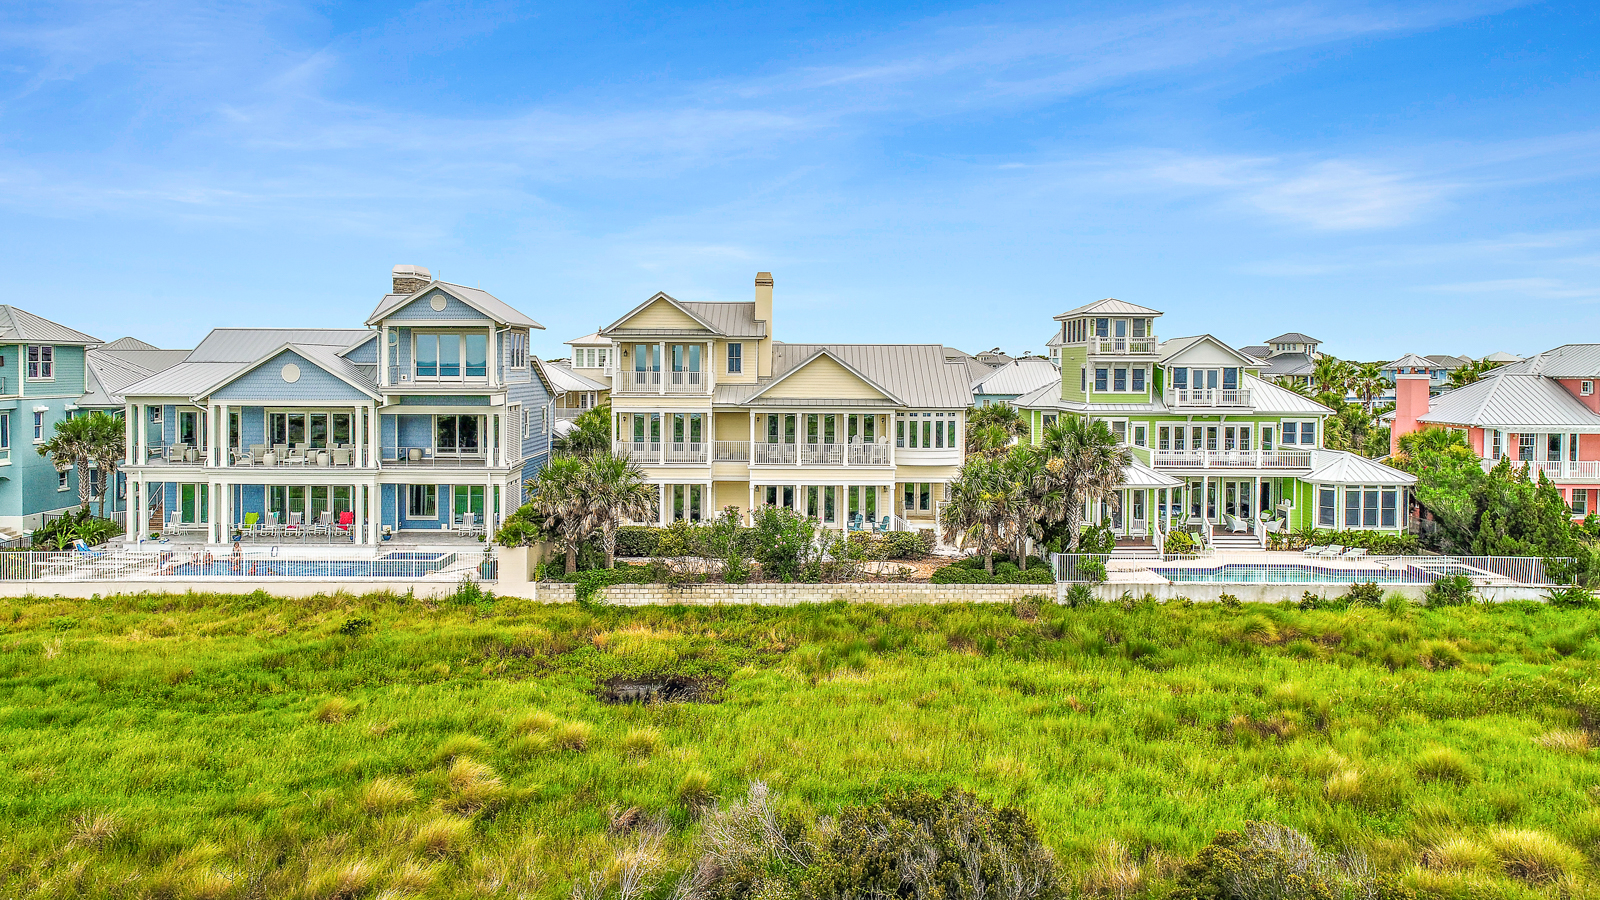 Sea Colony - Private, oceanfront community in St. Augustine Beach